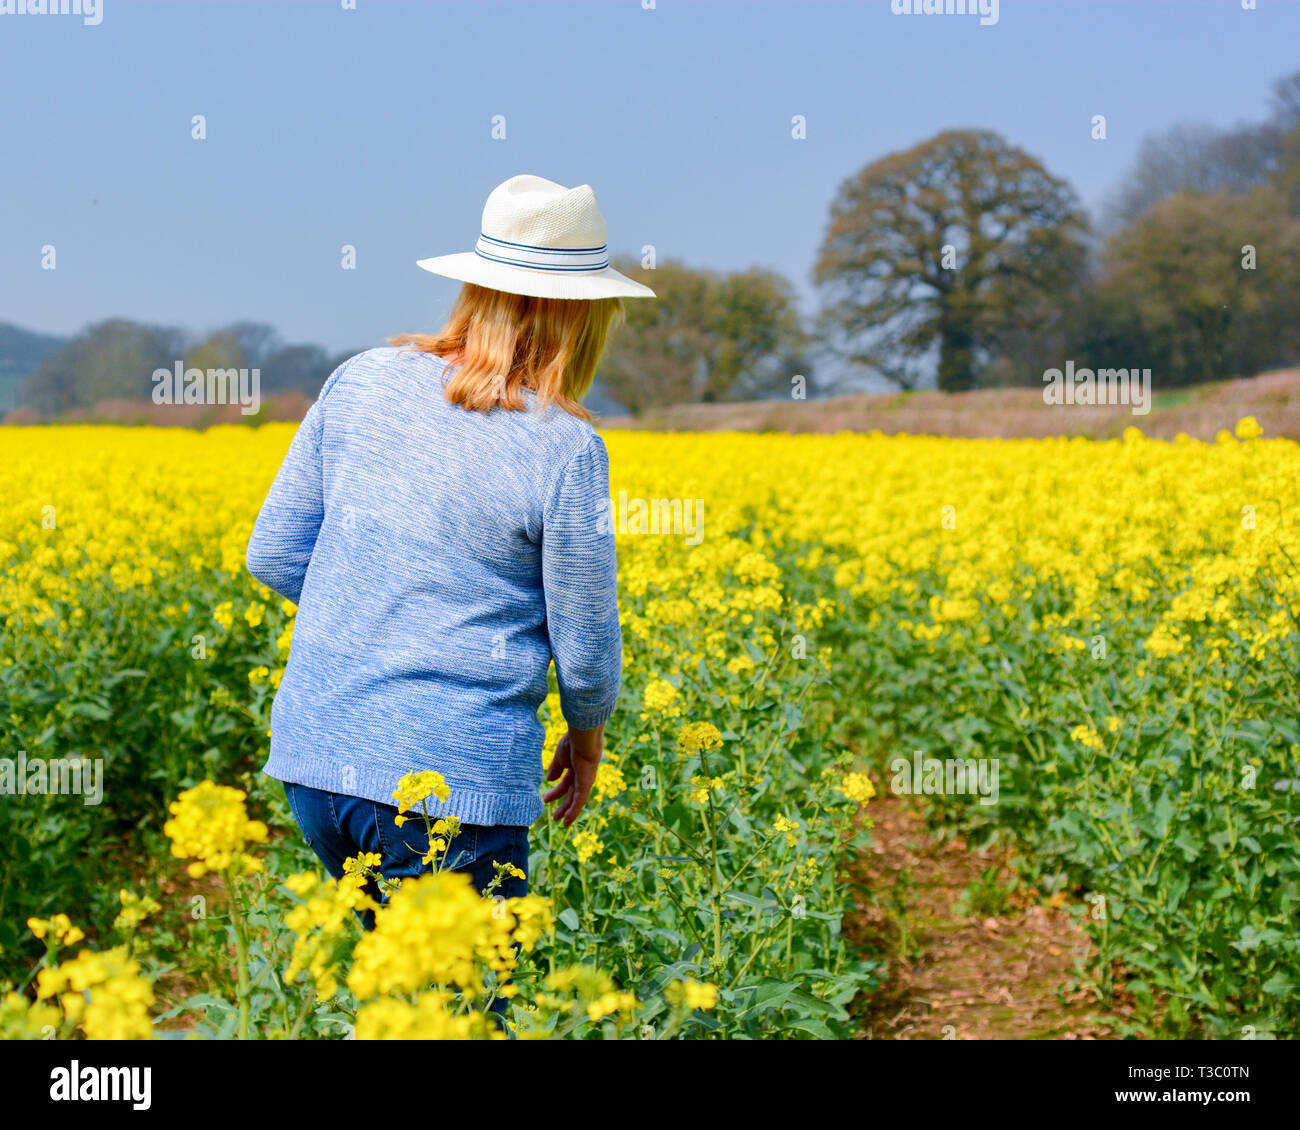 Woman in a white summer straw boater hat and a blue top walking in spring sunshine through bright yellow rapeseed flowers in a field. - Stock Image